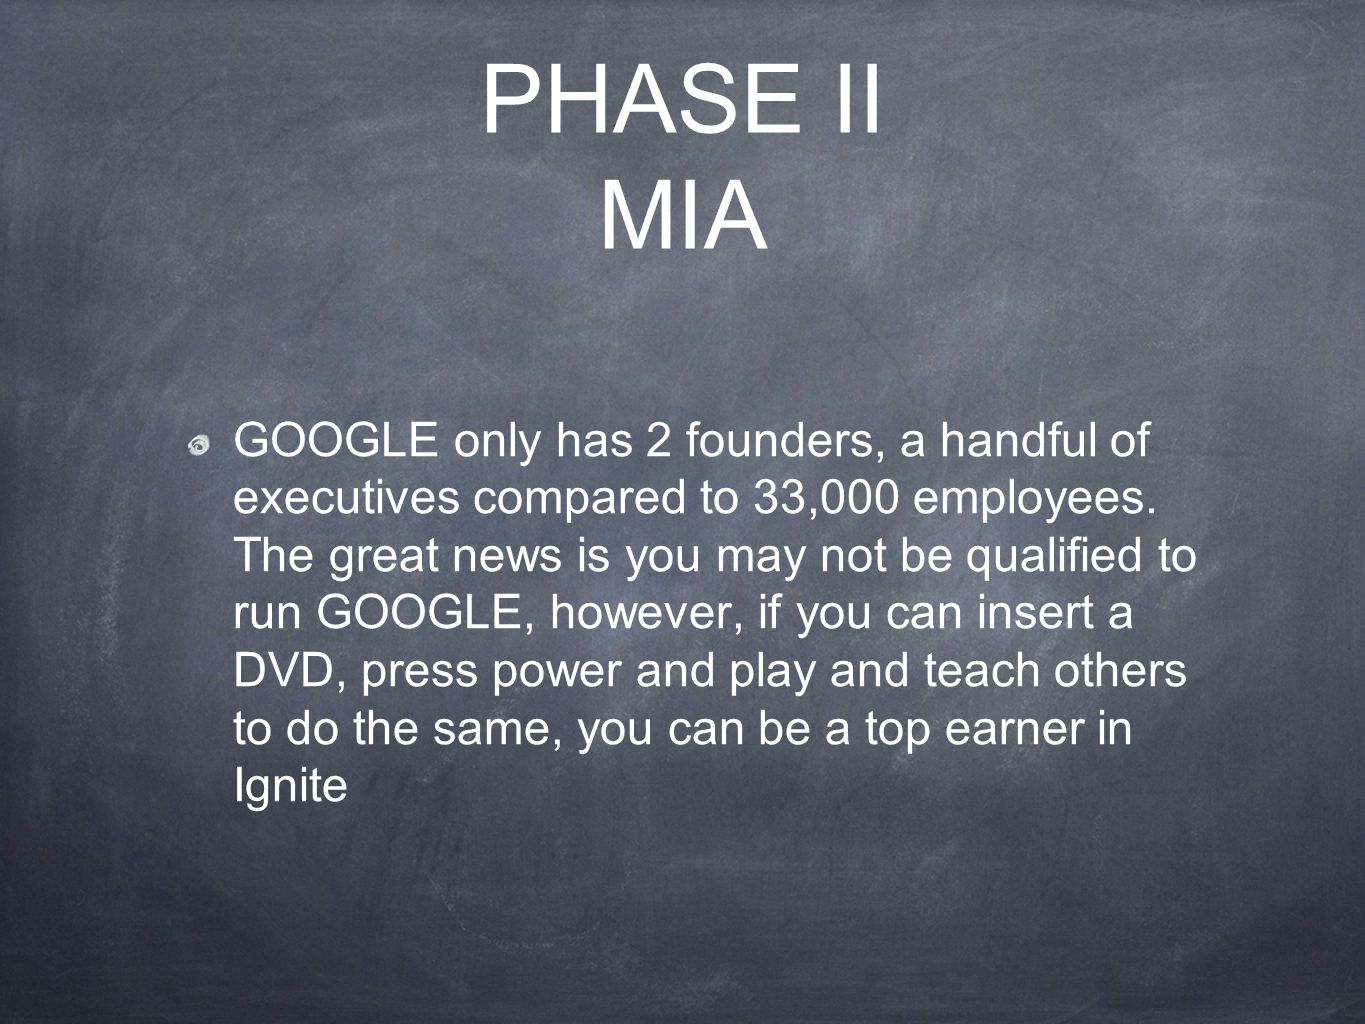 PHASE II MIA GOOGLE only has 2 founders, a handful of executives compared to 33,000 employees. The great news is you may not be qualified to run GOOGL